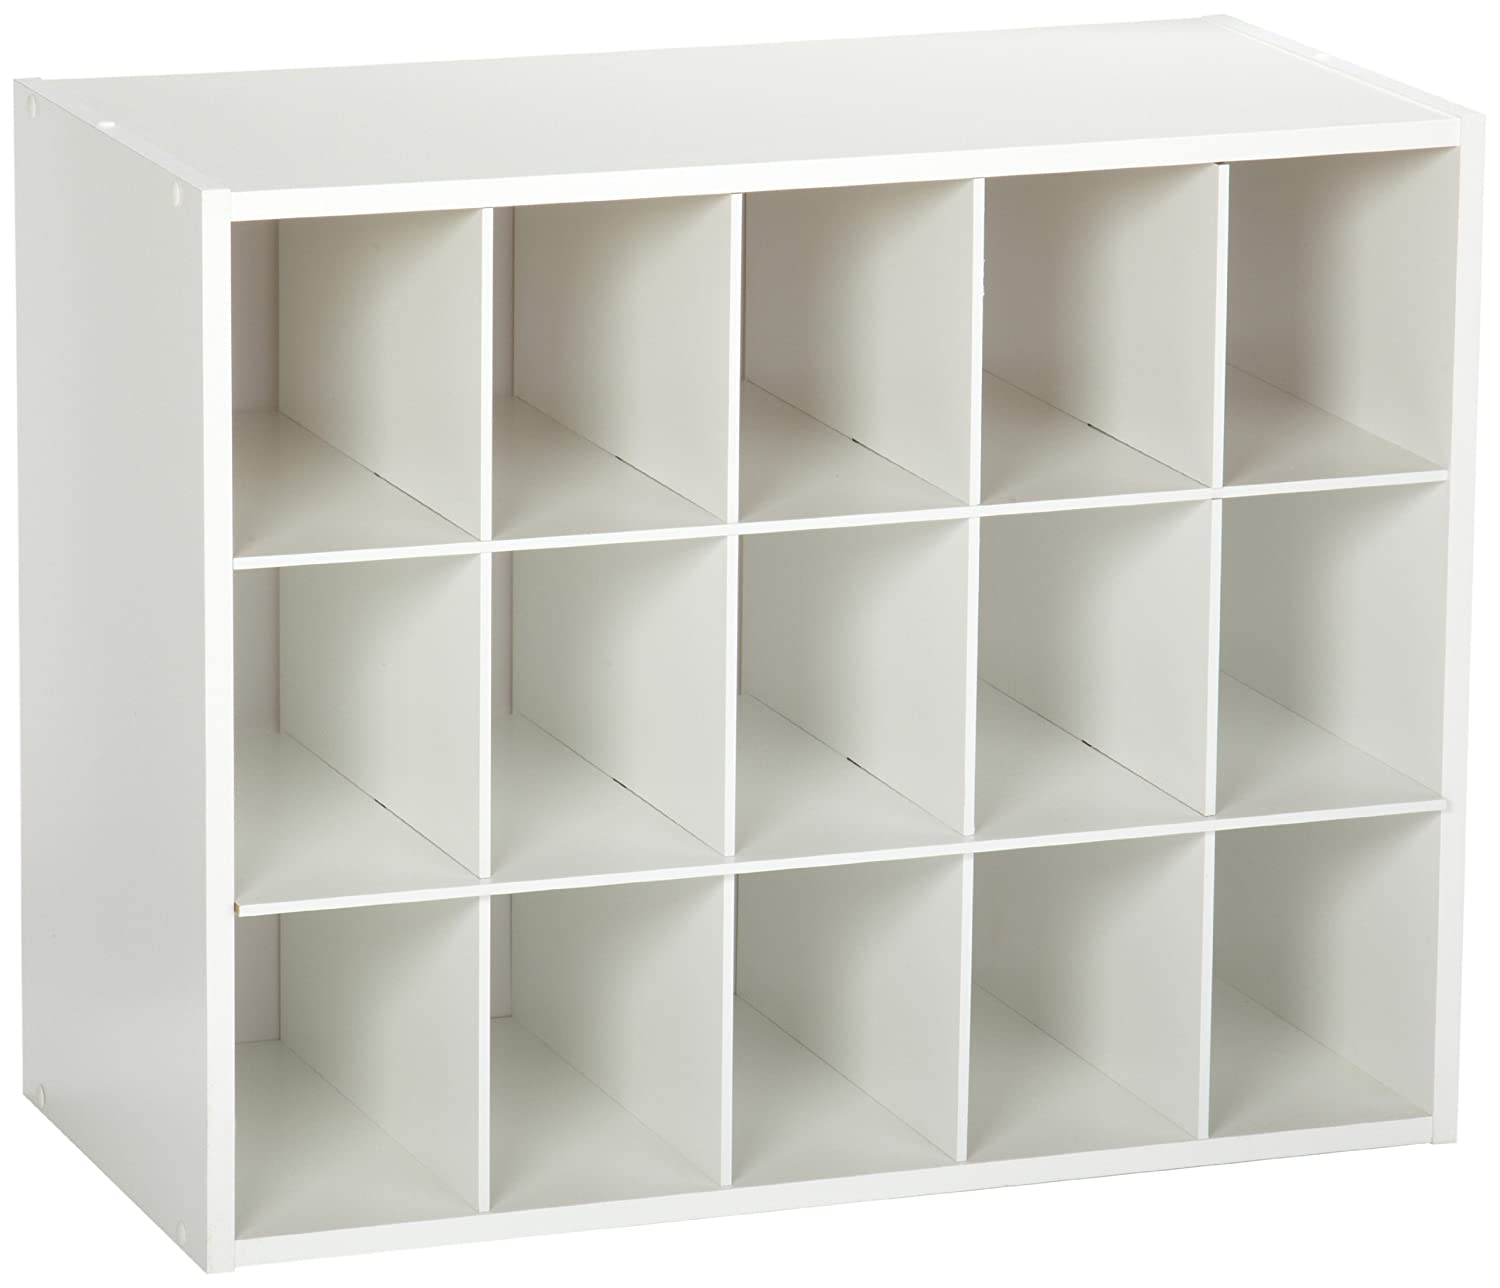 shelving in cubby desk formaldehyde bookshelves white products free shelf cubbies storage basics with voc way cube stackable cubes